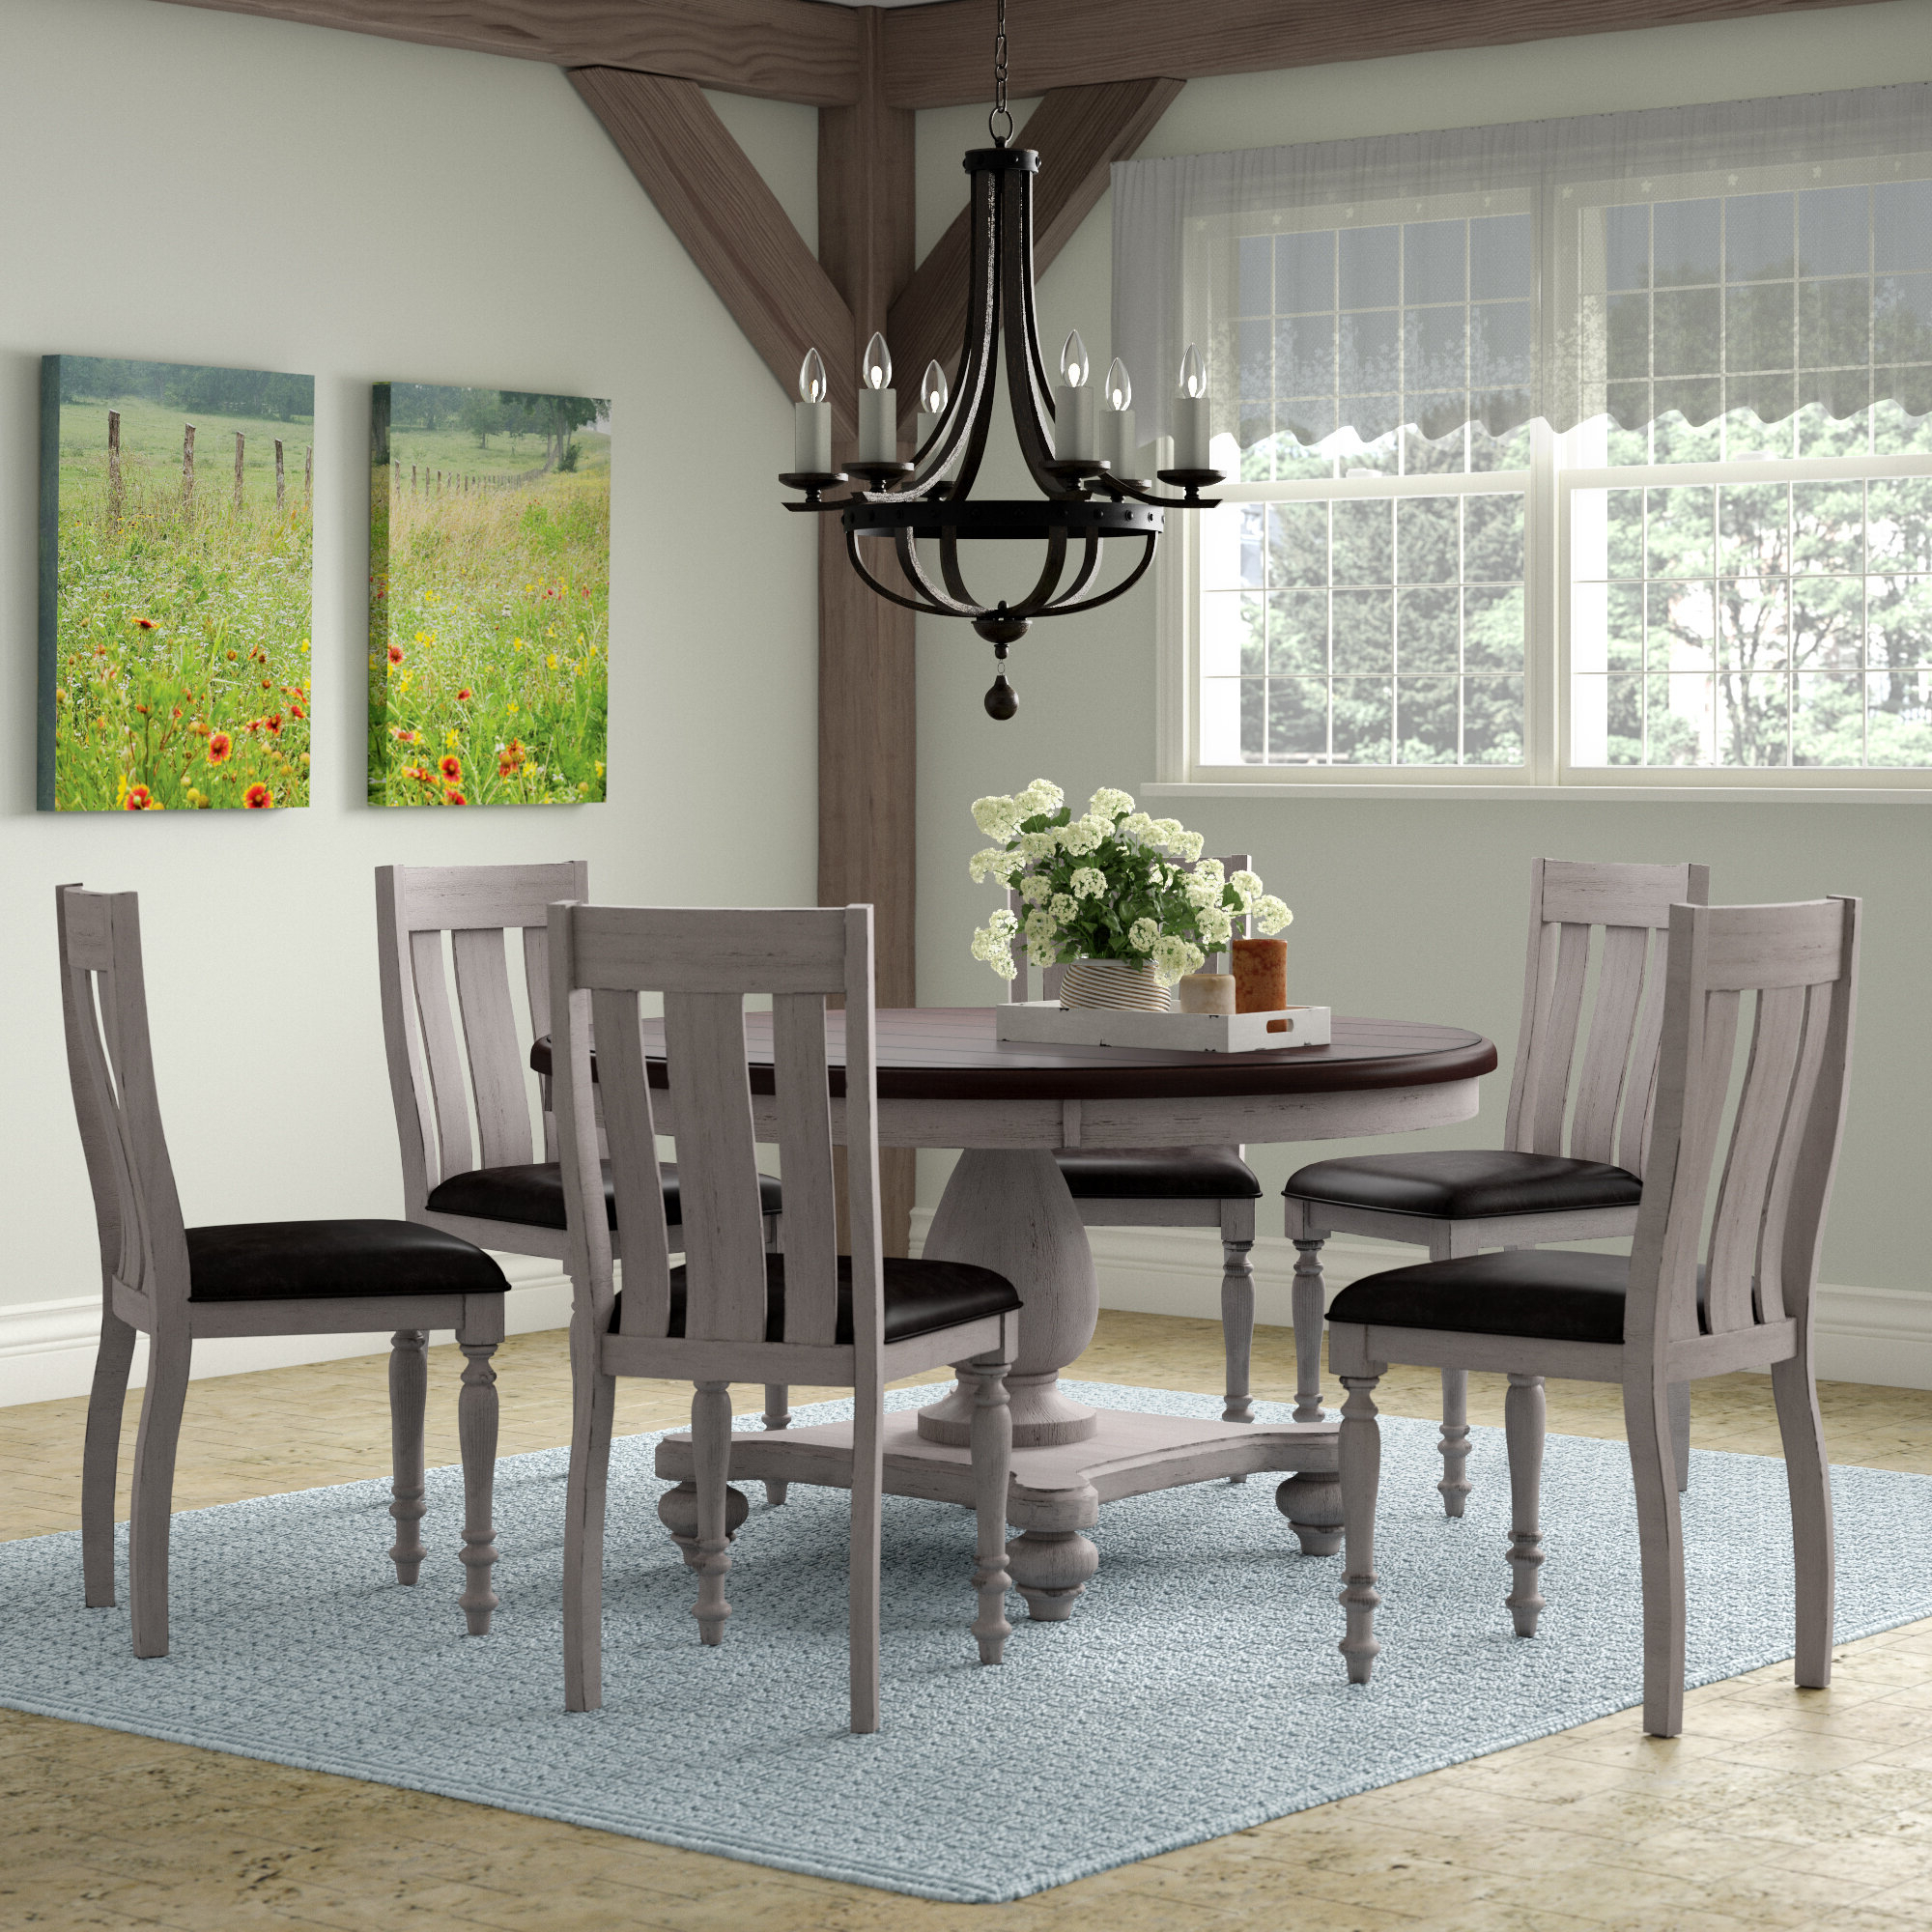 Queener 5 Piece Dining Sets Inside Well Liked Mixon 7 Piece Solid Wood Dining Set (View 5 of 20)